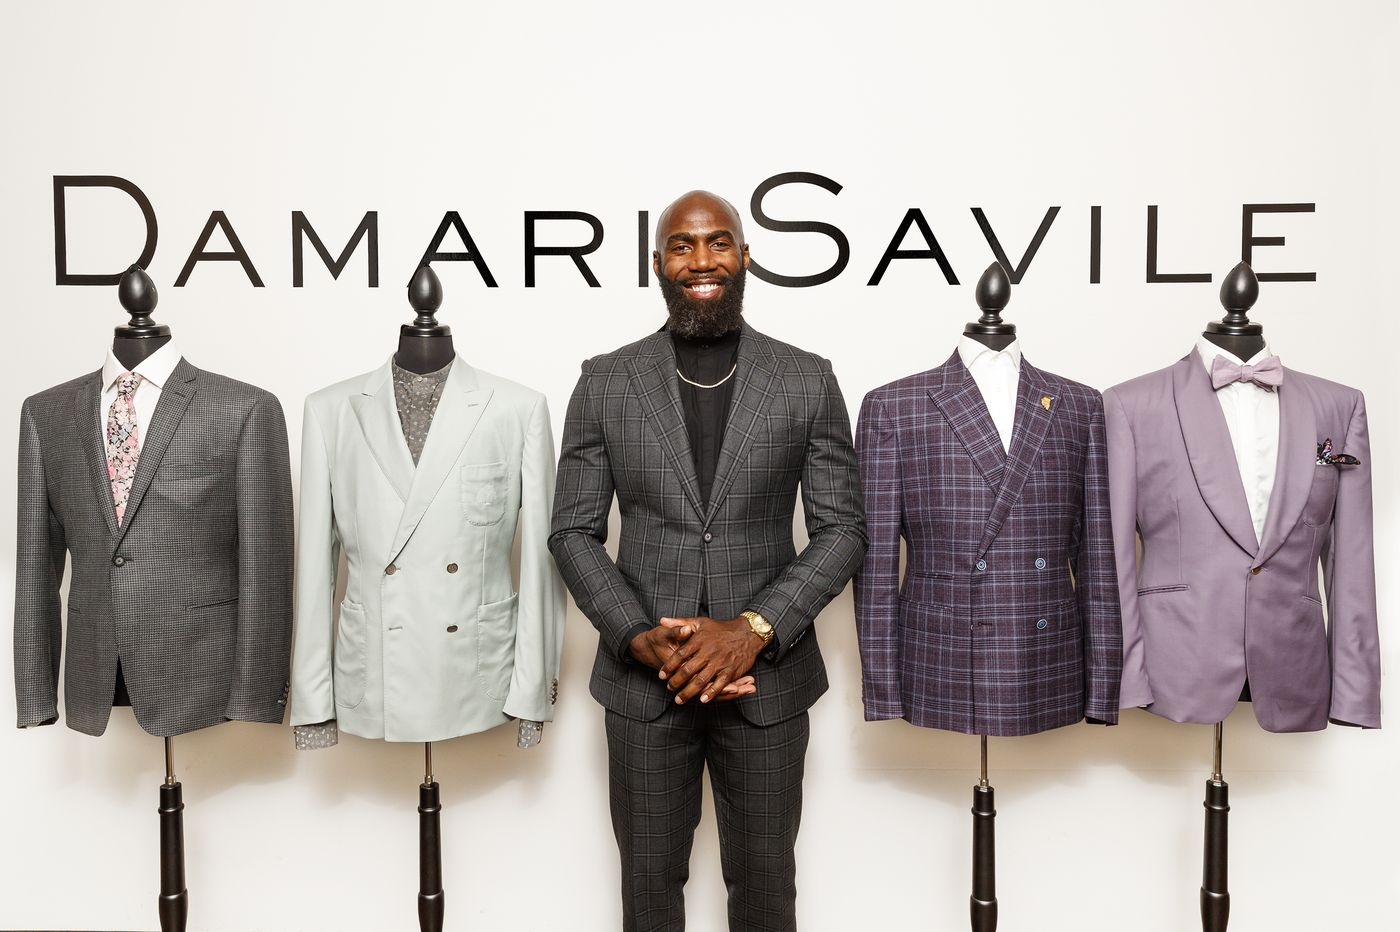 Eagles' Malcolm Jenkins, through his menswear brand Damari Savile, shows the black experience is the American experience | Elizabeth Wellington